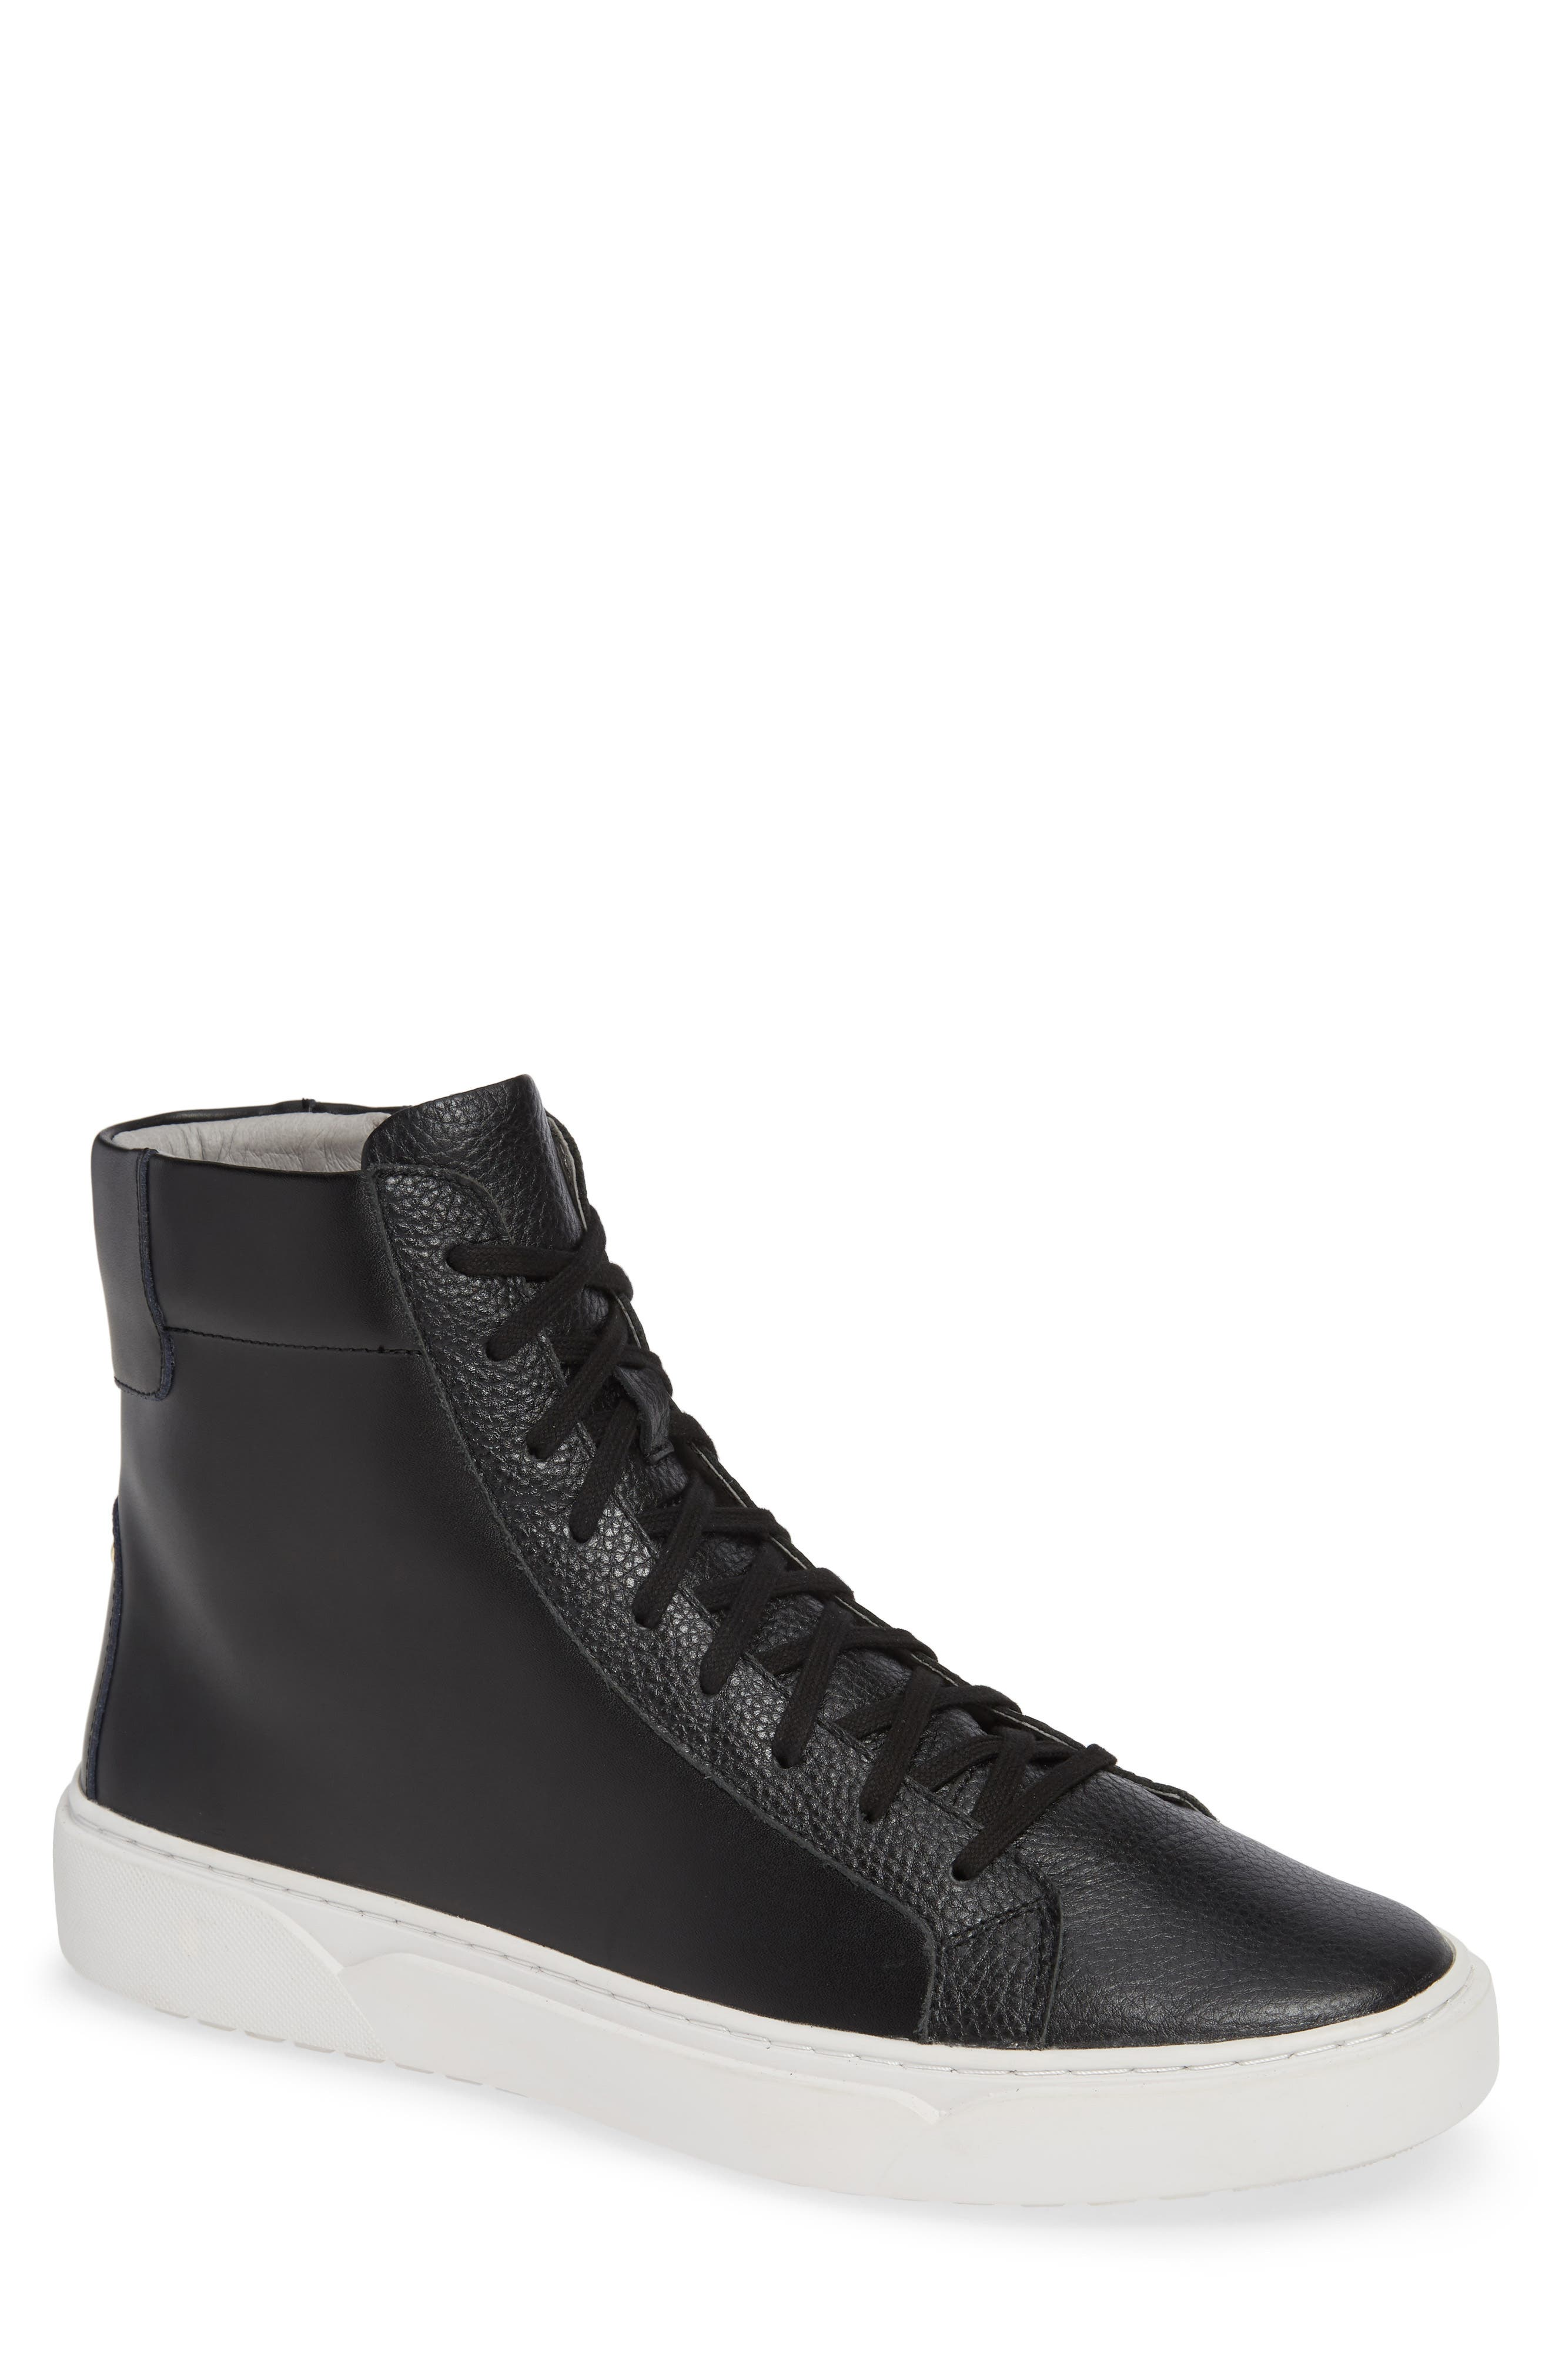 Logan High Top Sneaker,                             Main thumbnail 1, color,                             HIGHLAND LEATHER